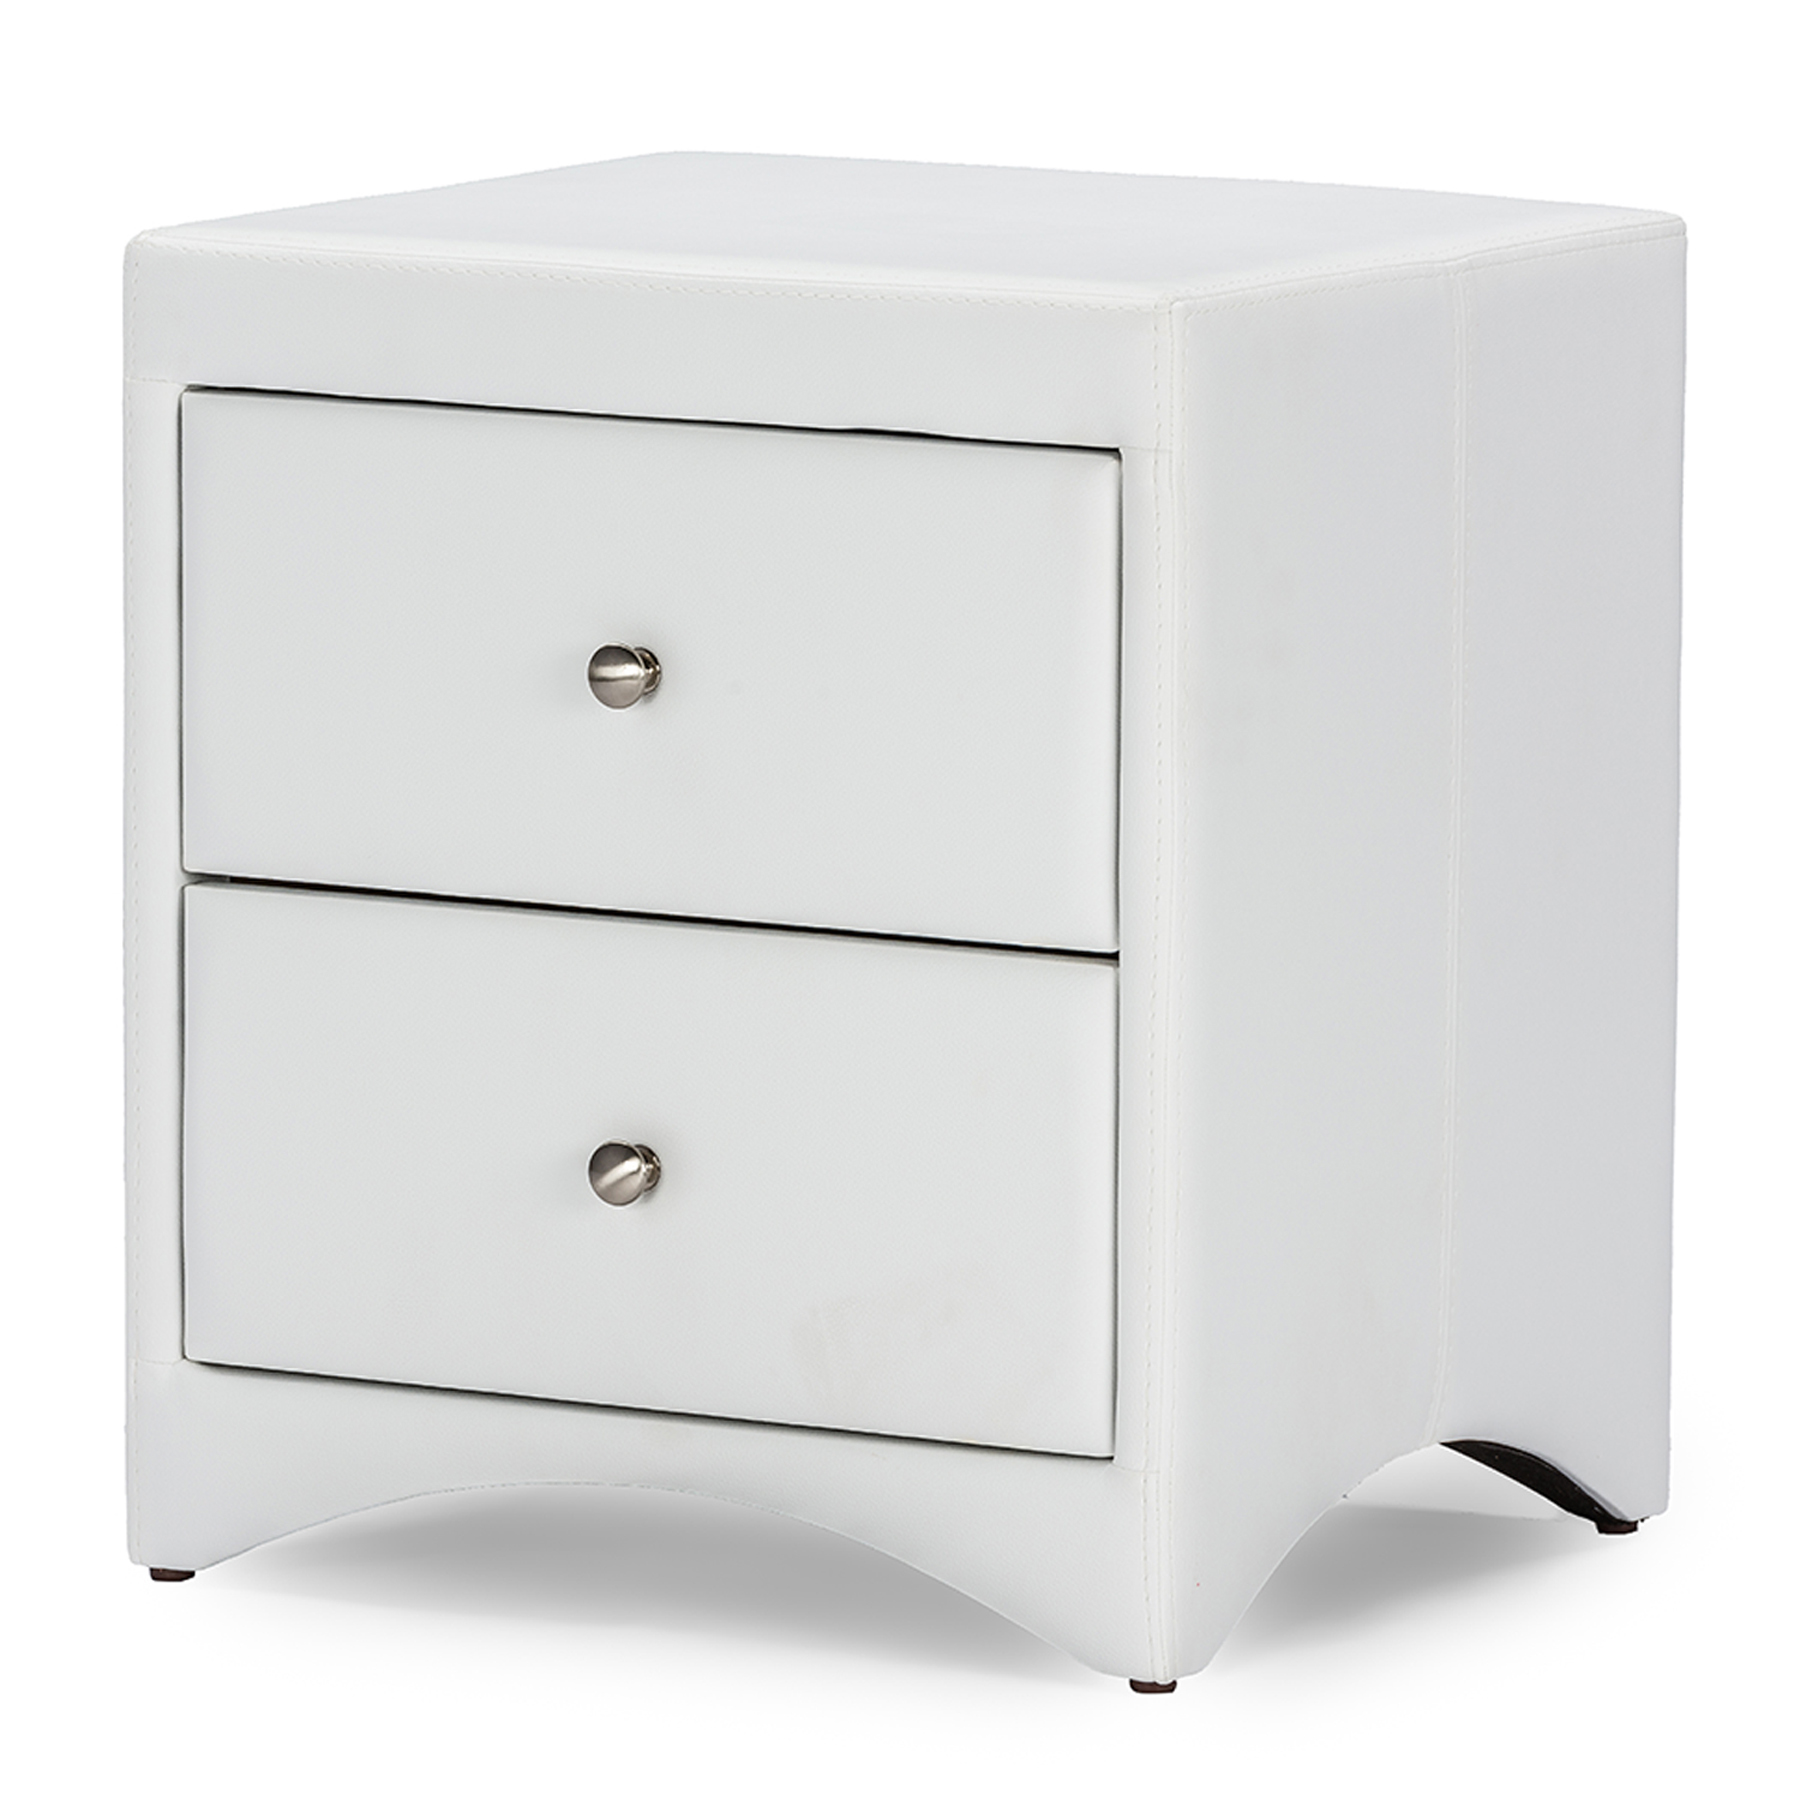 Image of Baxton Studio Dorian White Faux Leather Upholstered Modern Nightstand